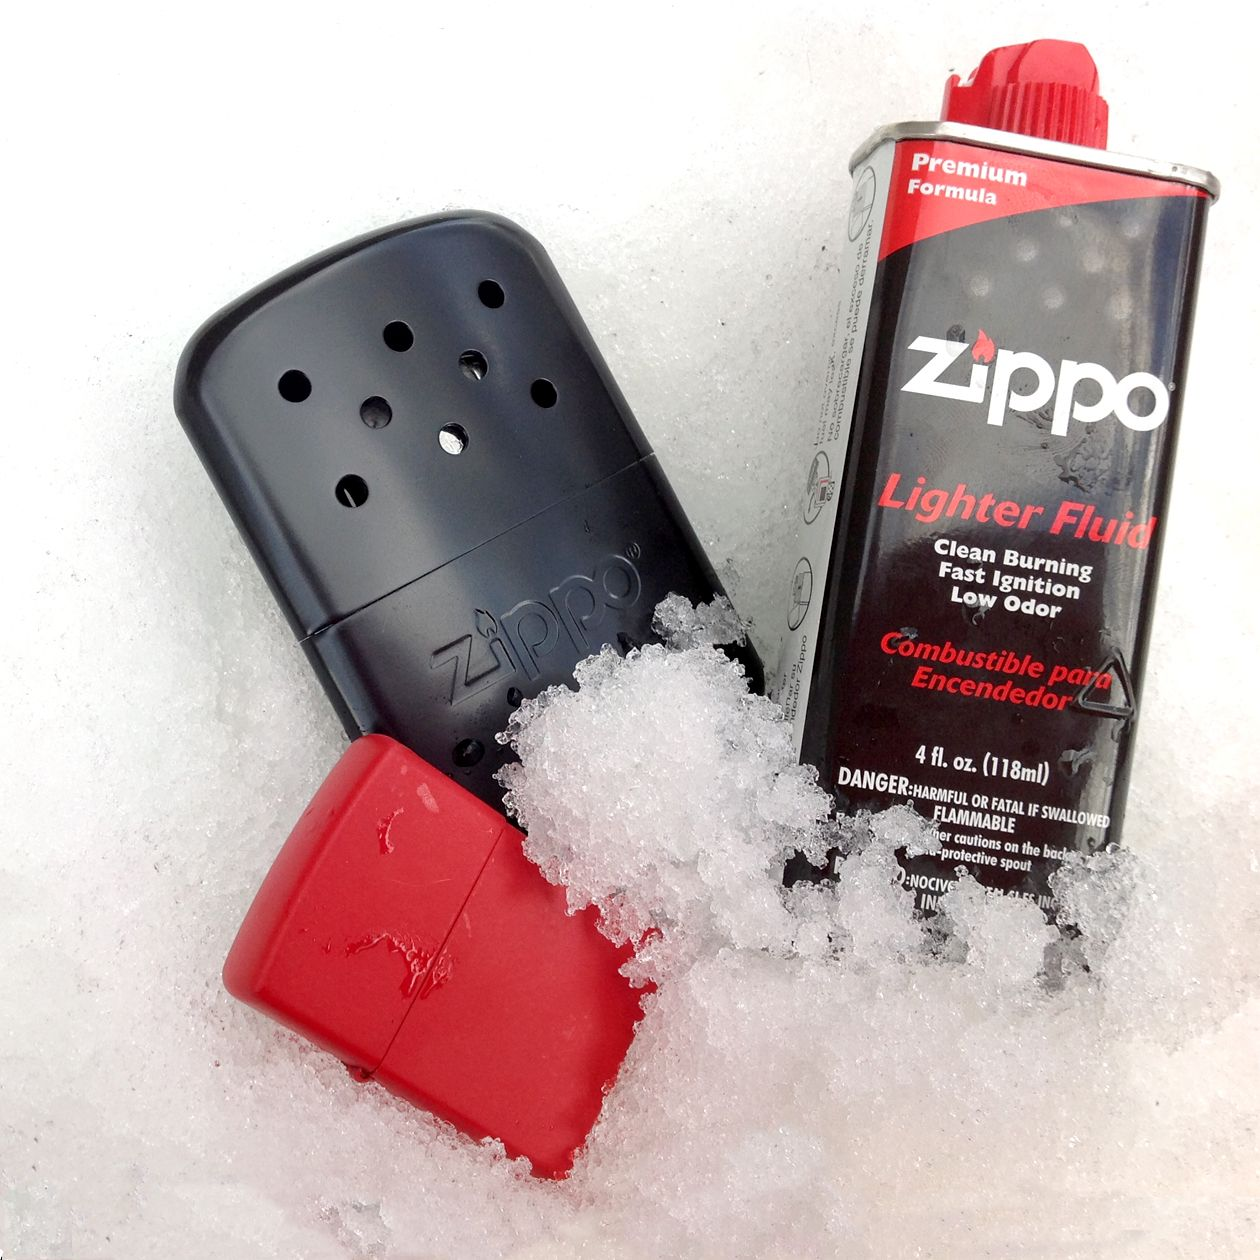 how to fill a zippo lighter with fuel